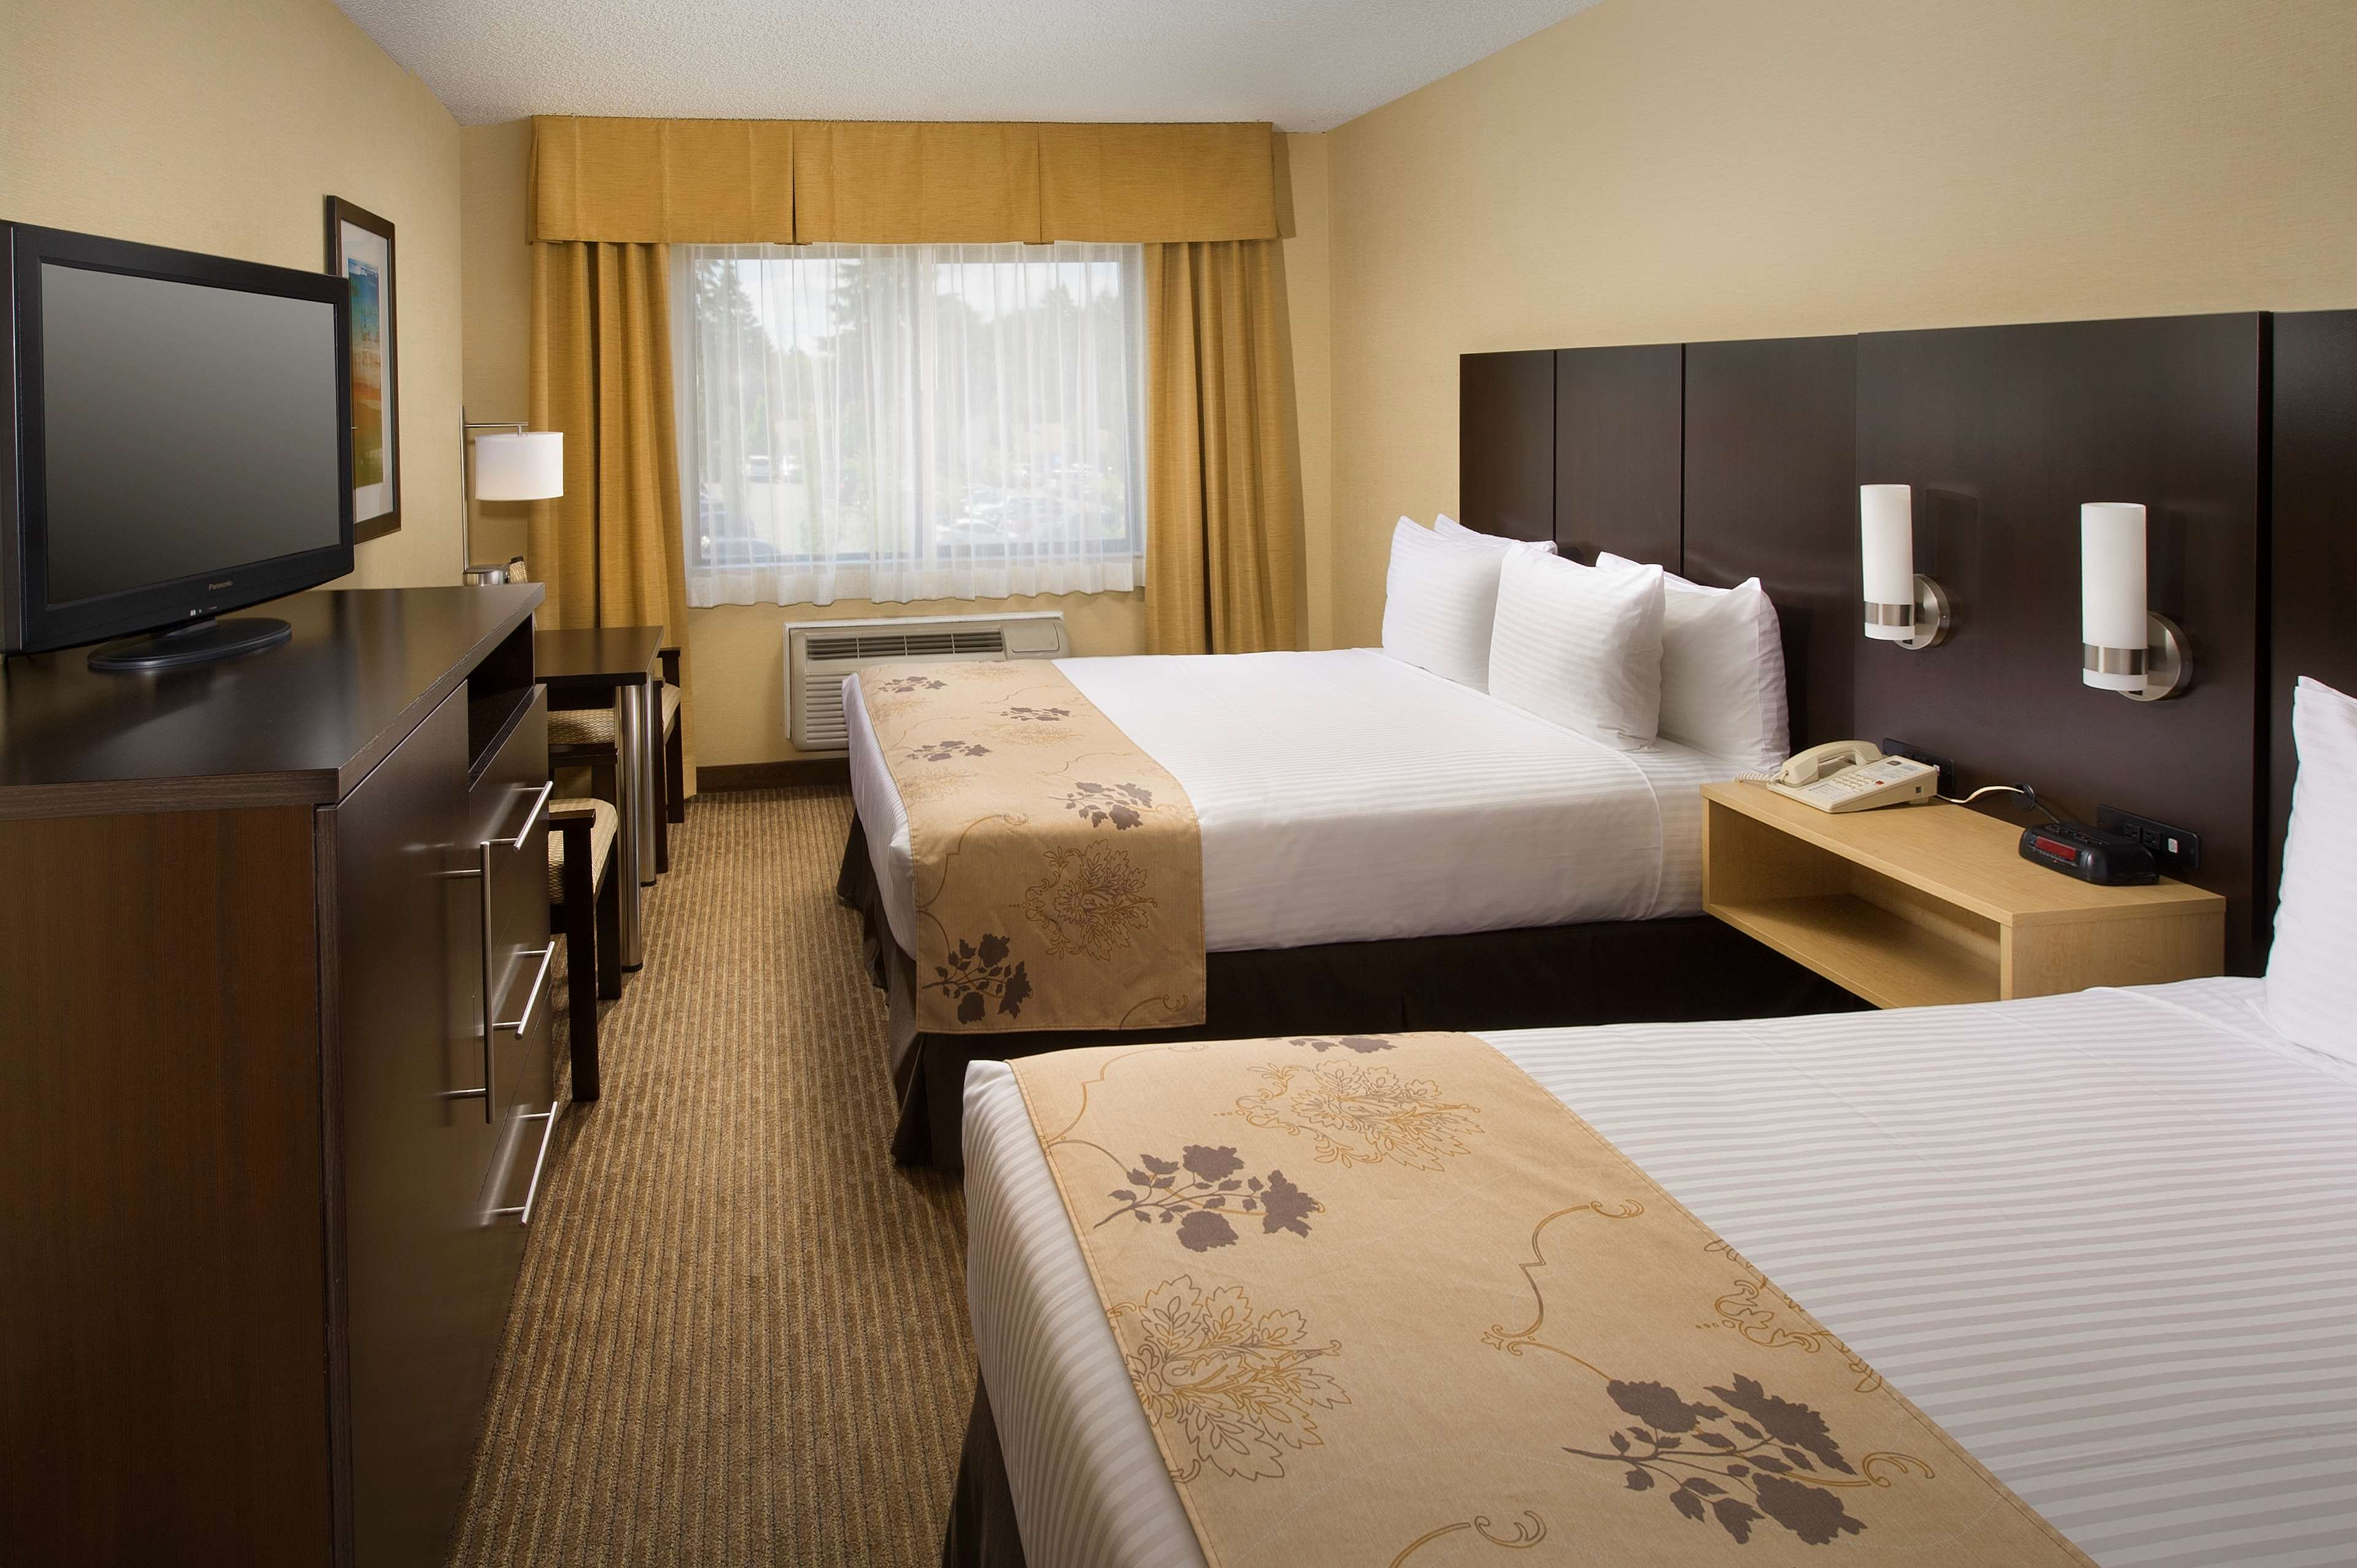 Double Queen Guest Room Best Western Seattle Airport Hotel Seattle (206)878-3300